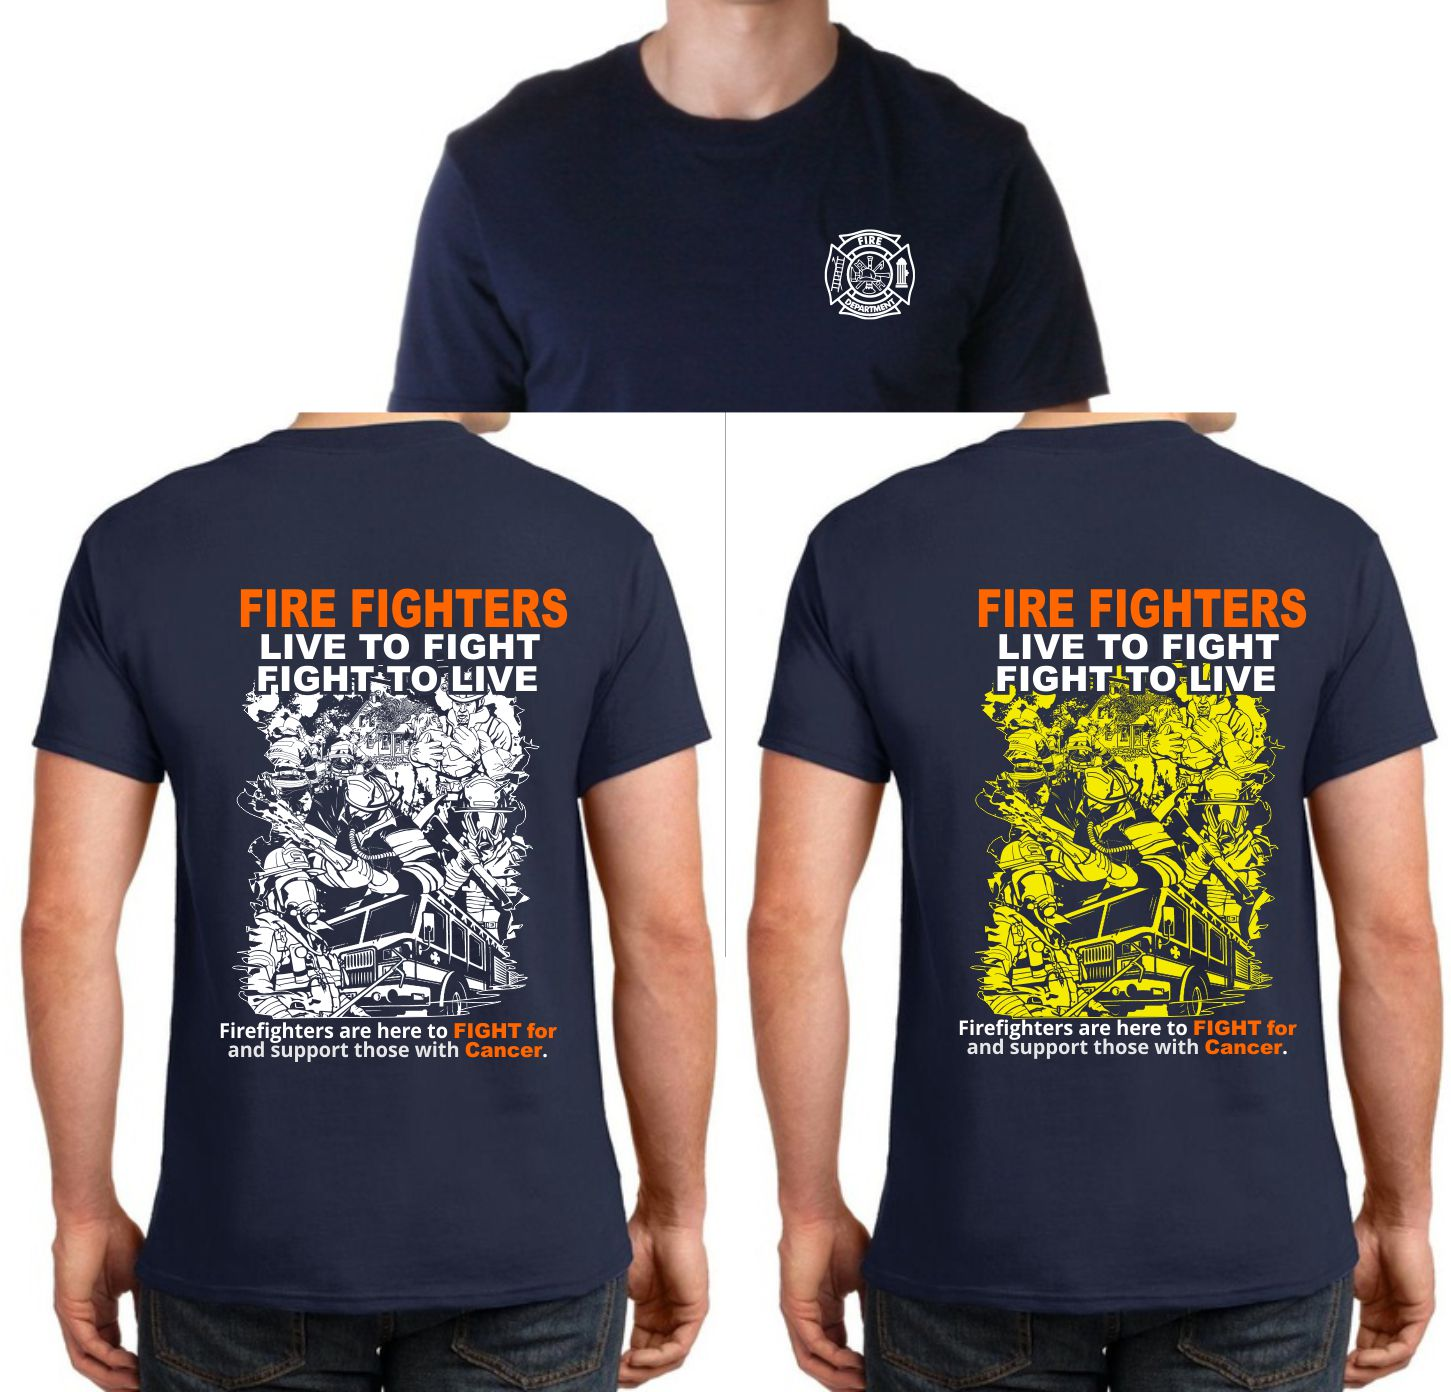 Bold Professional Fire Department T Shirt Design For Fundy Bay